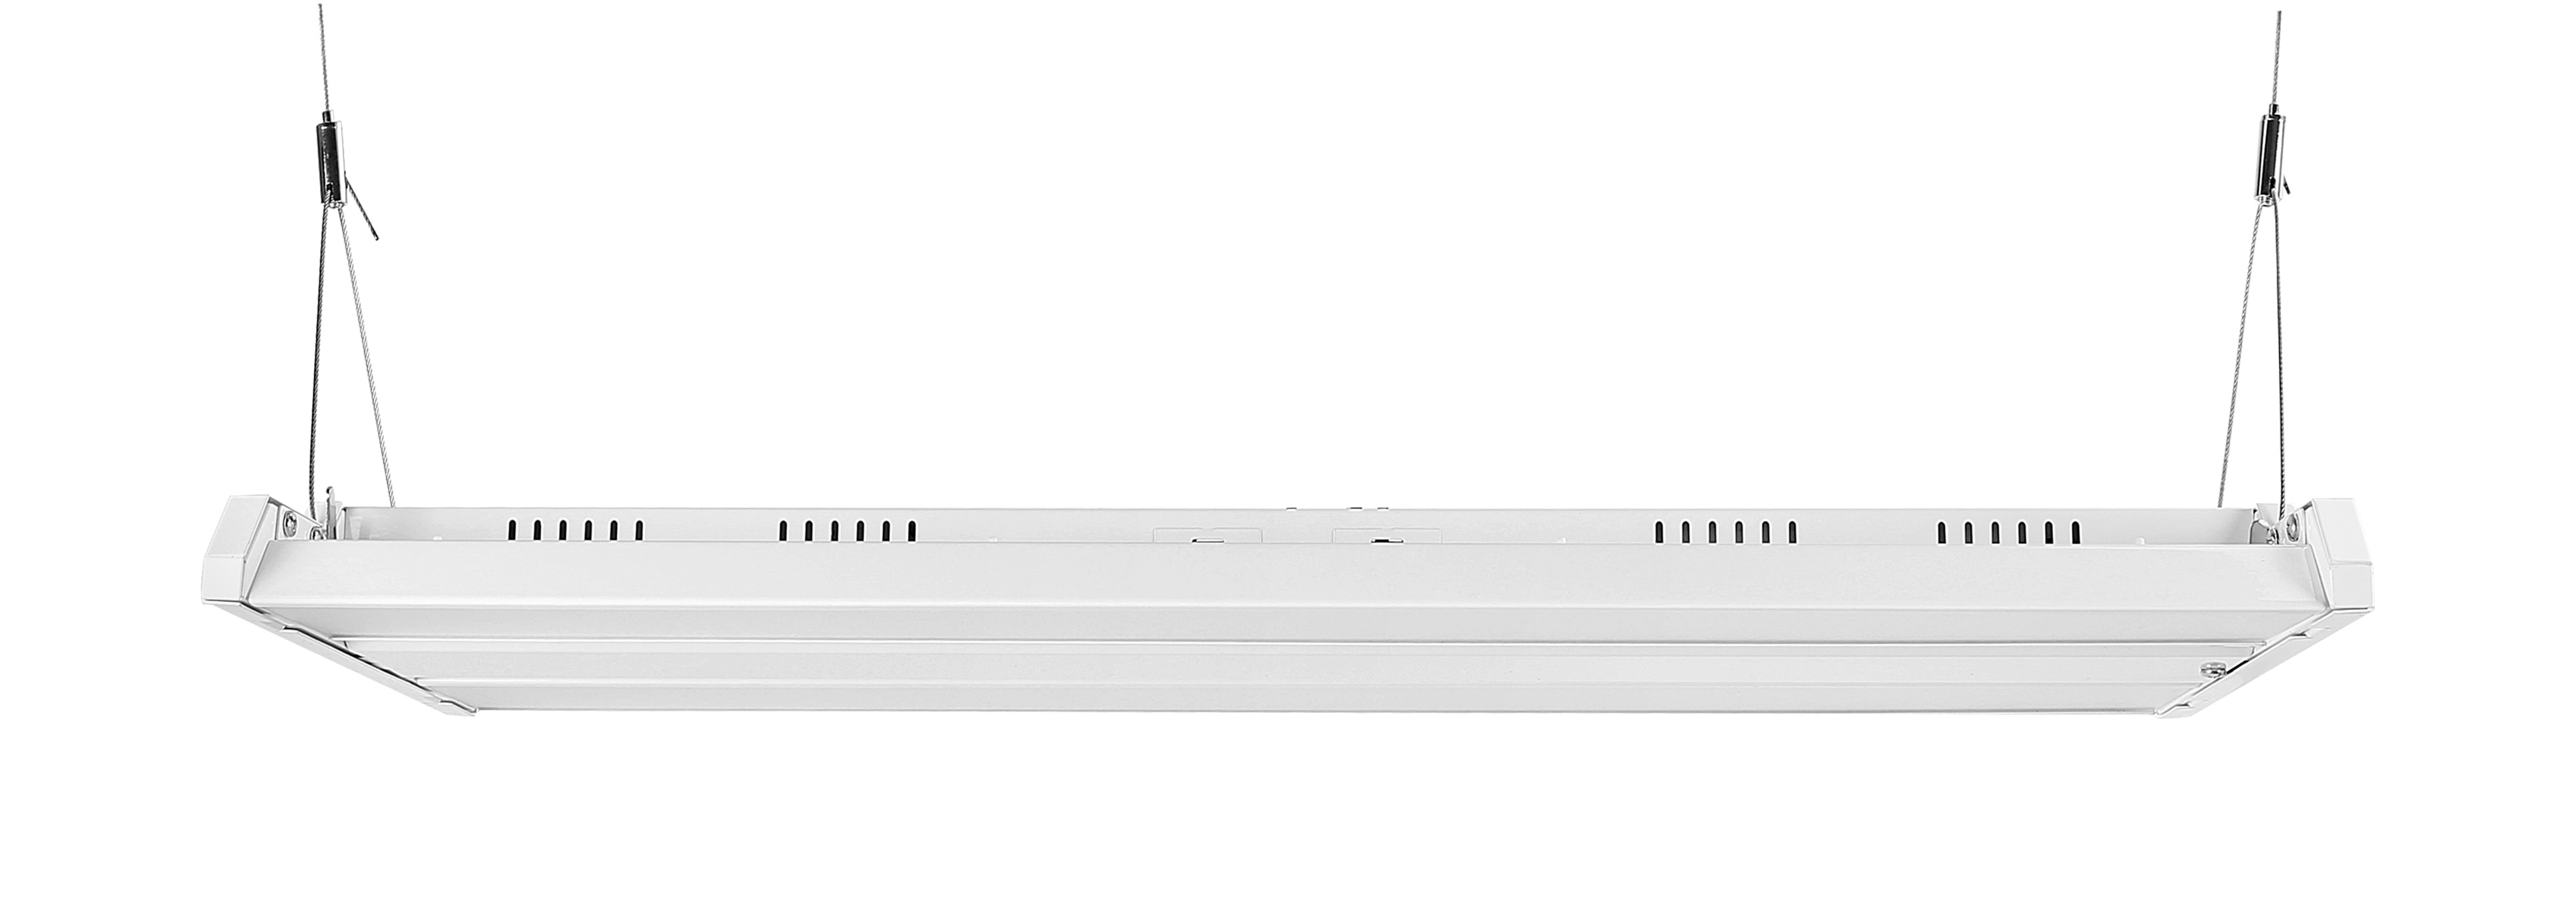 High Bay Led Lighting For Large Warehouses - With Emergency Battery (90 minute - 900 Lumen) 2' x 4' - 300 Watt, 40,000 Lumens, equivalent to 1000W Metal Halide